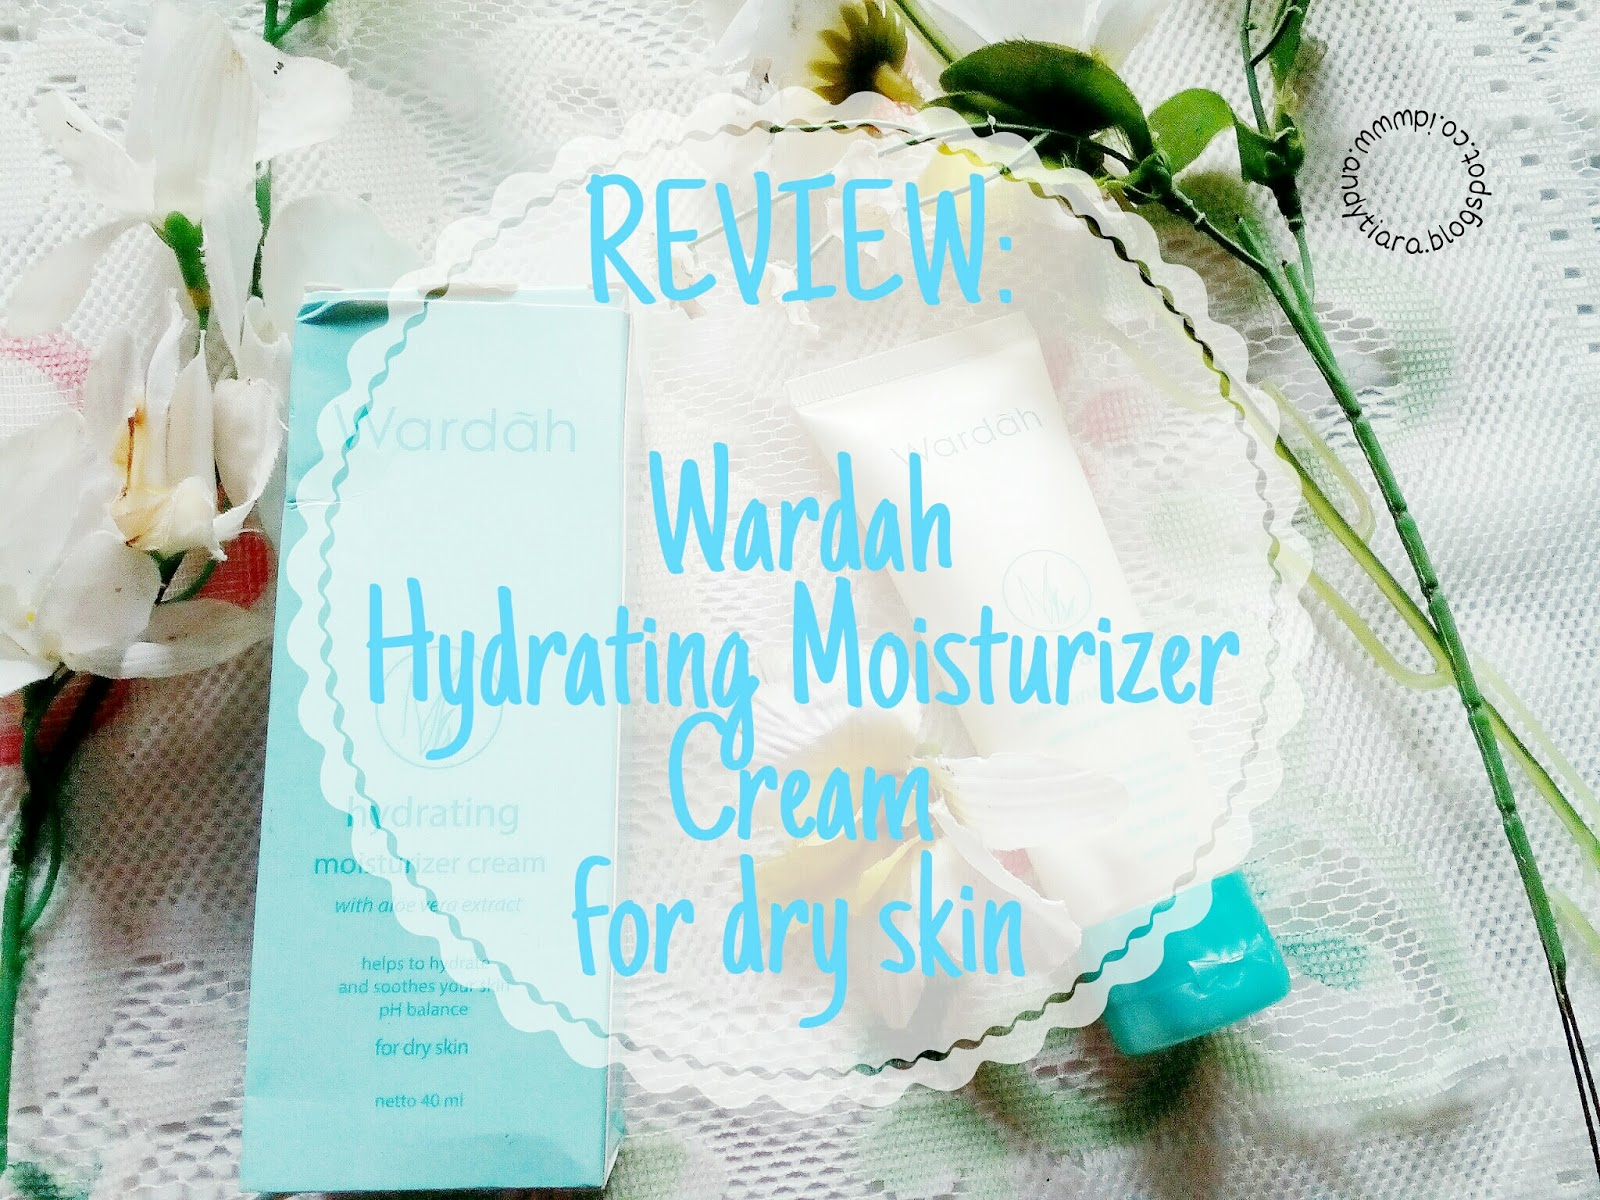 Review Wardah Hydrating Moisturizer Cream For Dry Skin